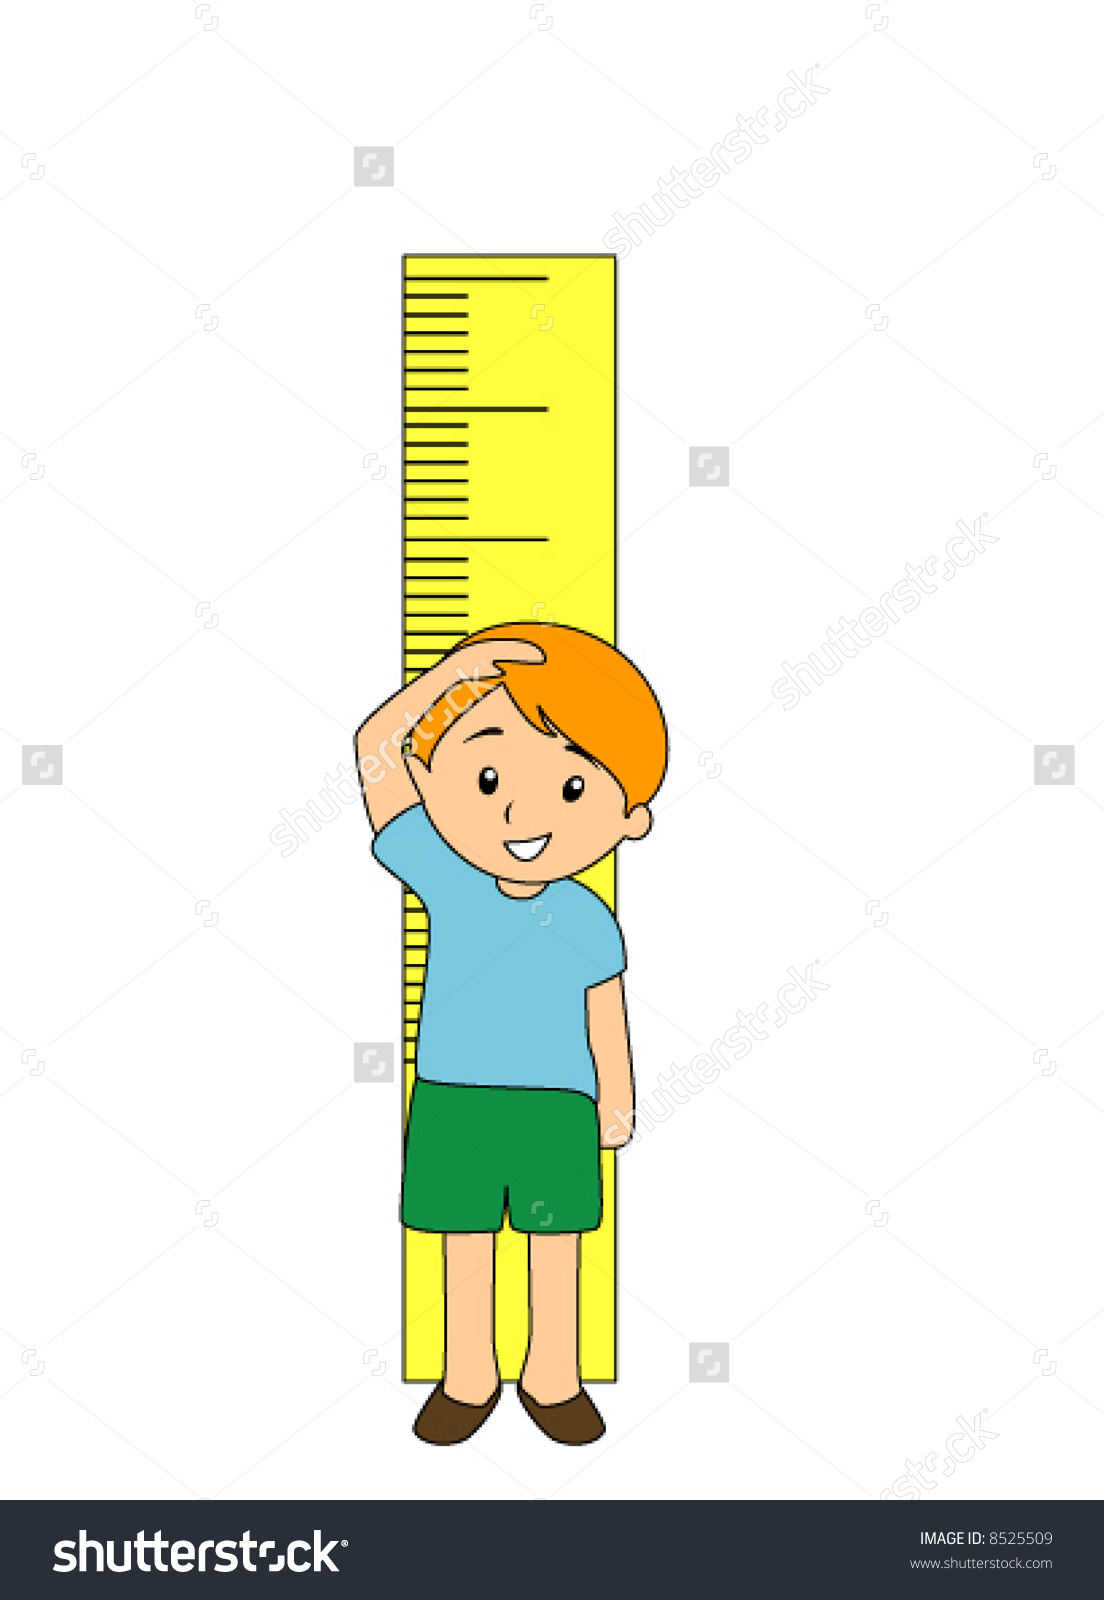 Measuring height clipart.